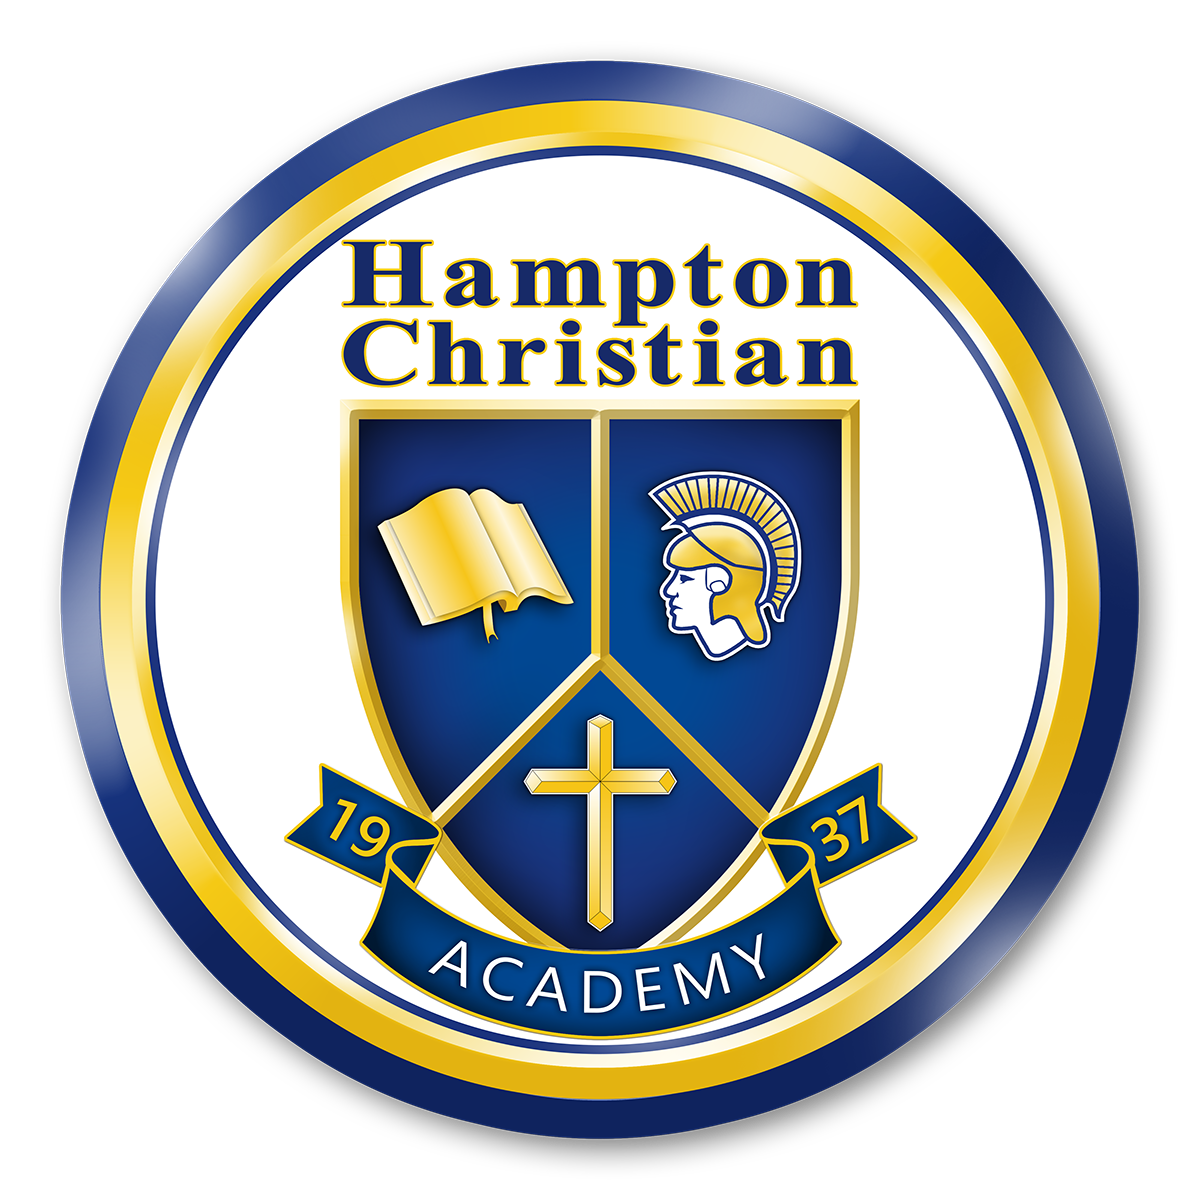 Hampton Christian Academy